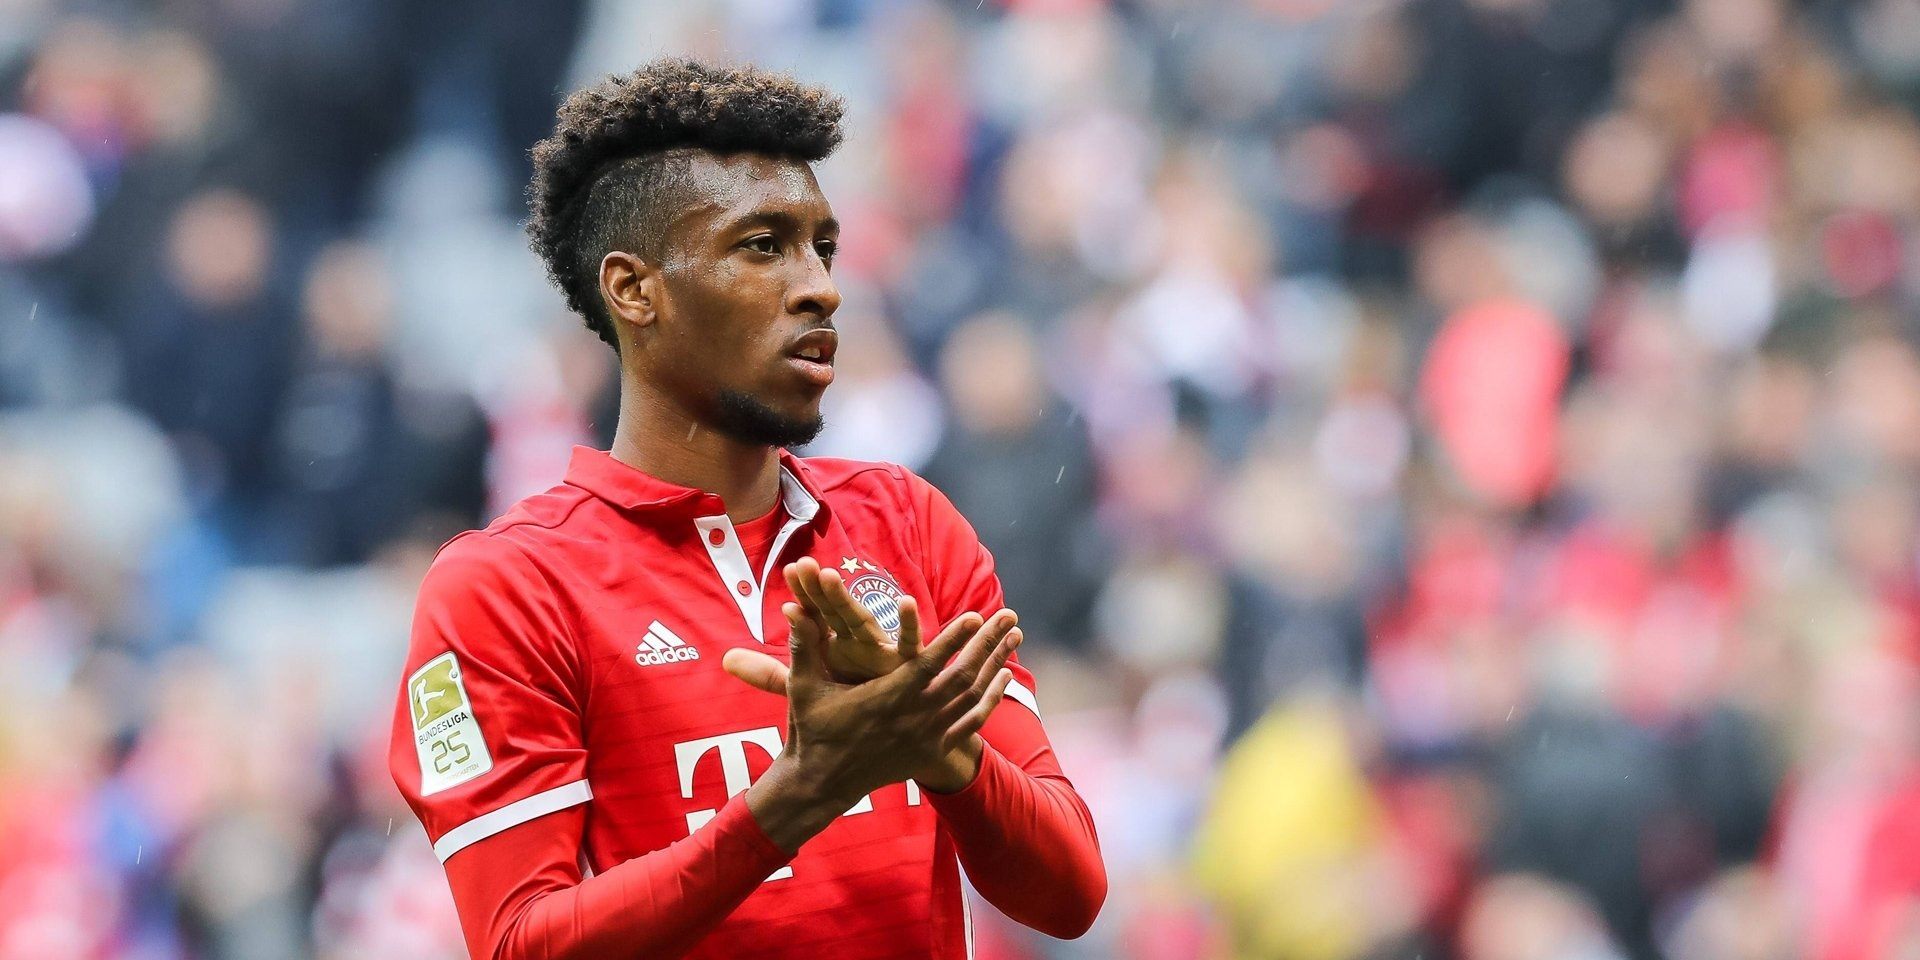 Liverpool-linked Bundesliga star's agent searching for Premier League offers – report